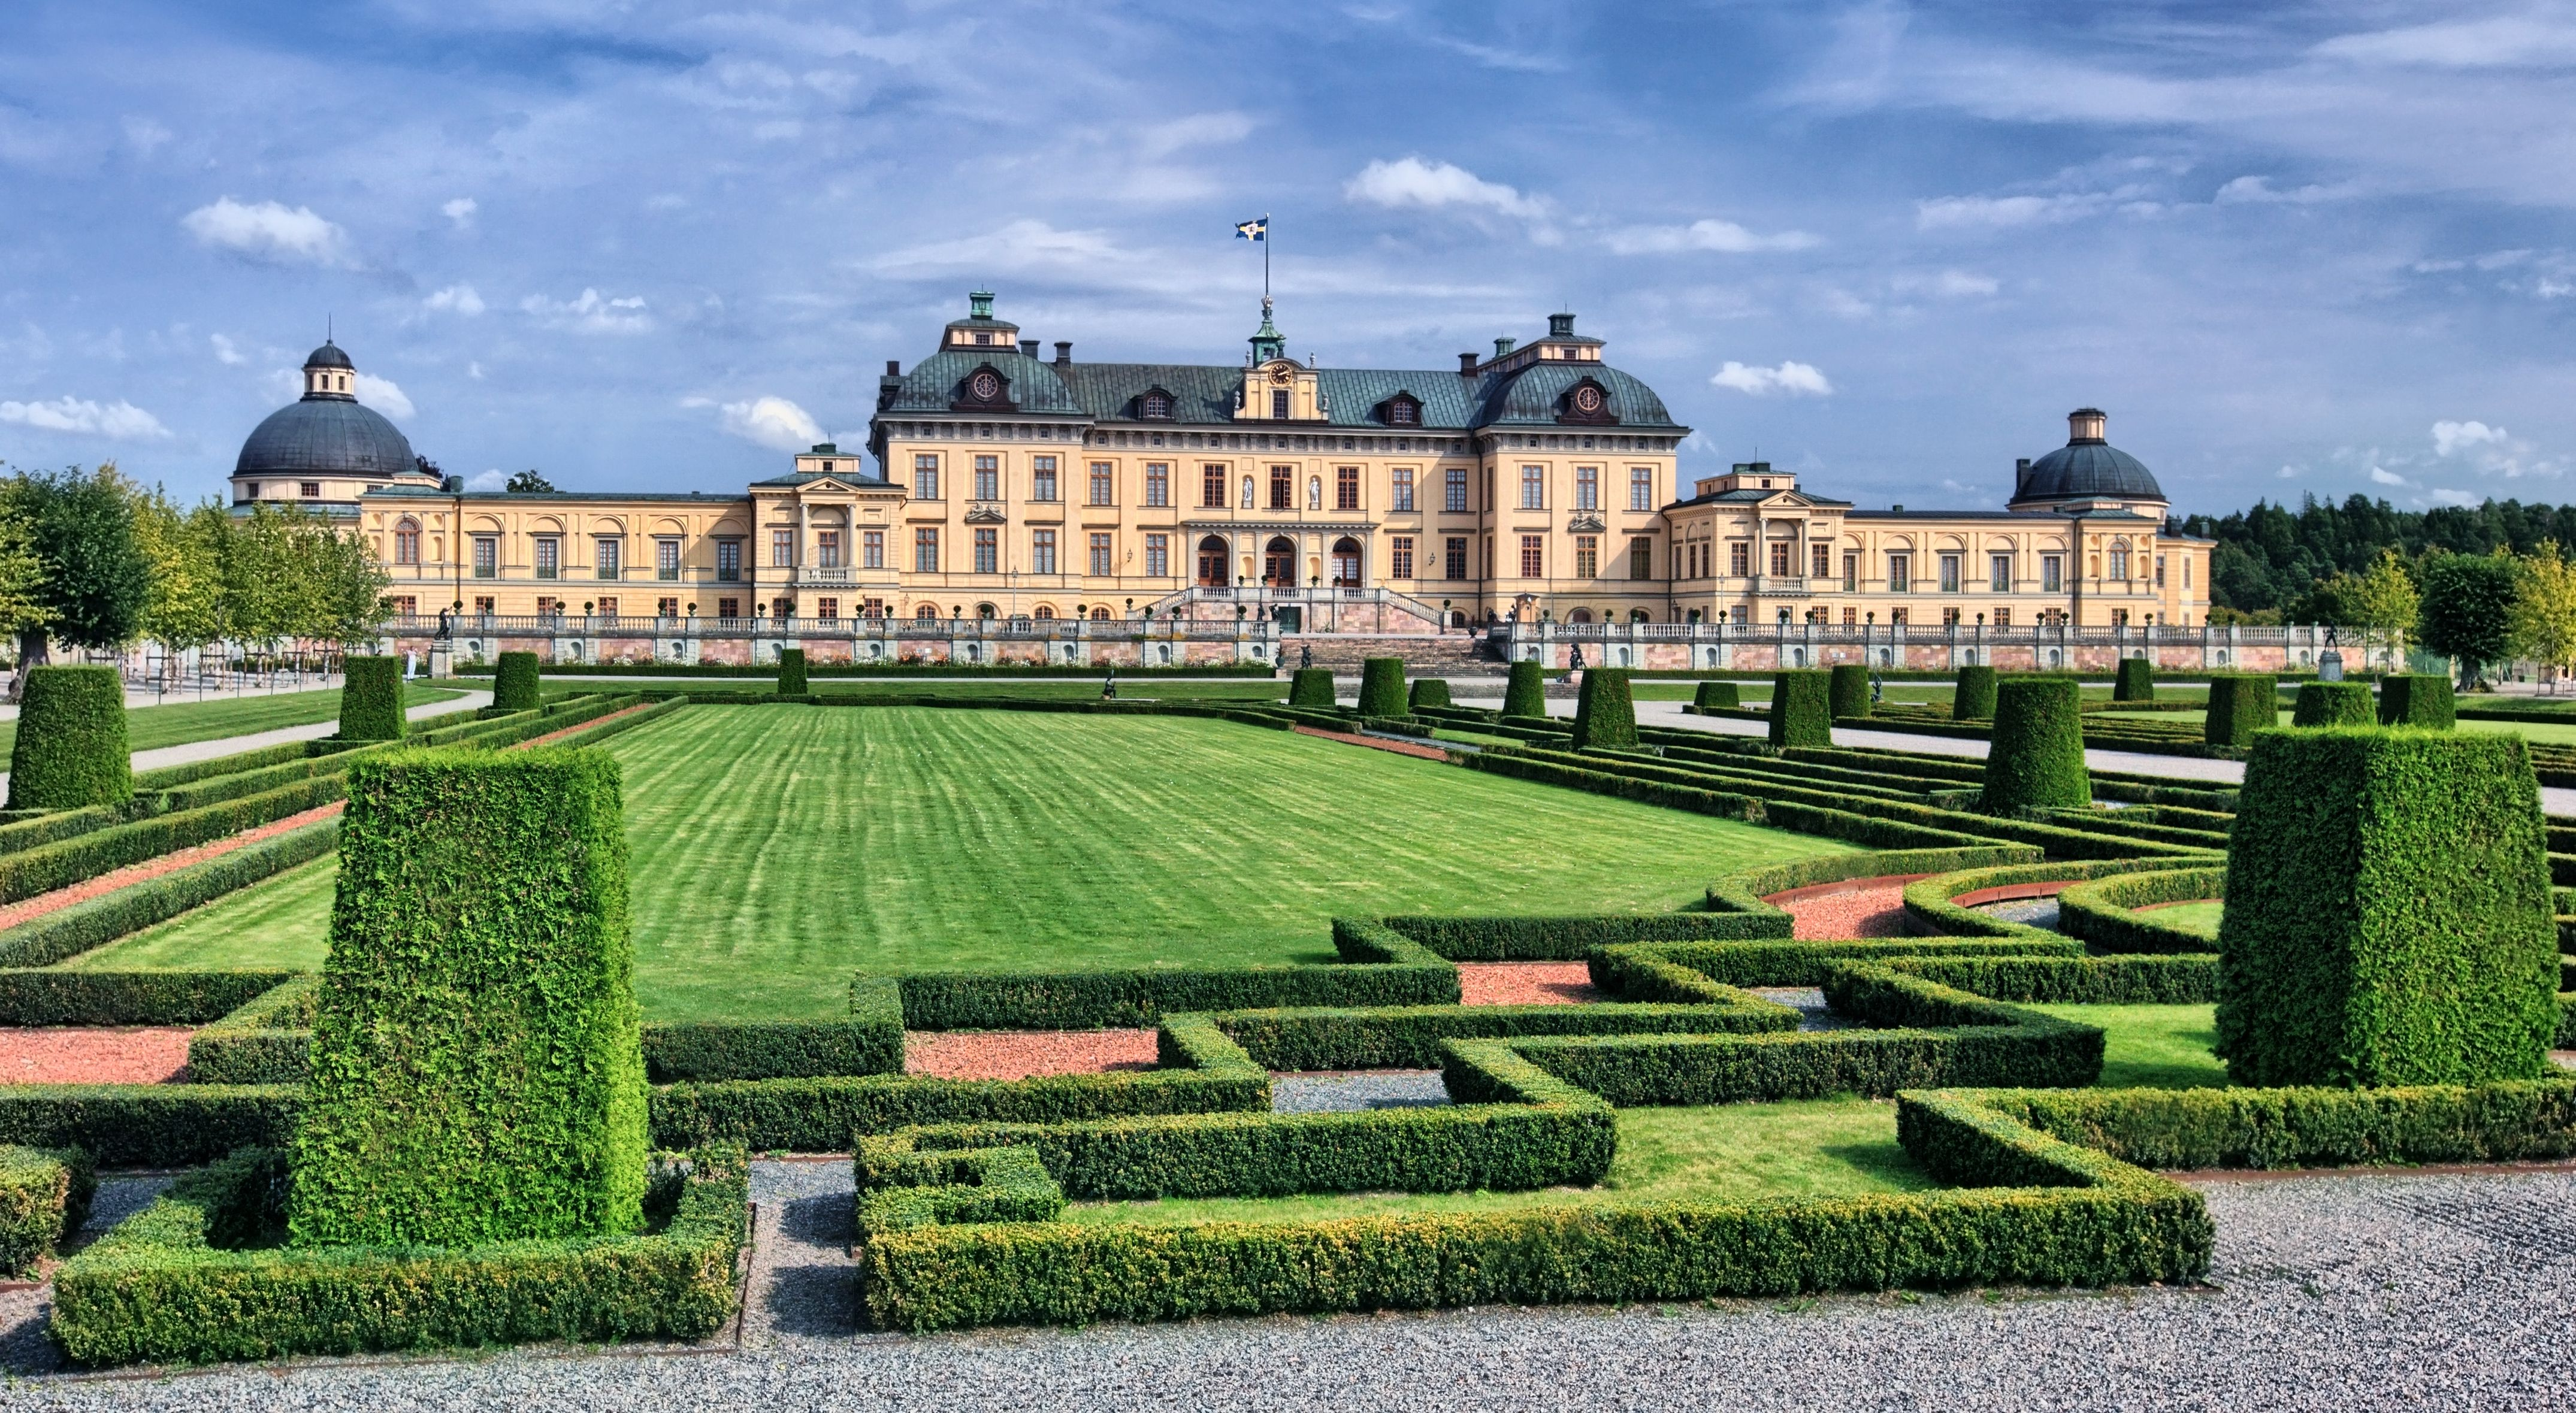 Drottningholm Palace Google Search Foreign Travel